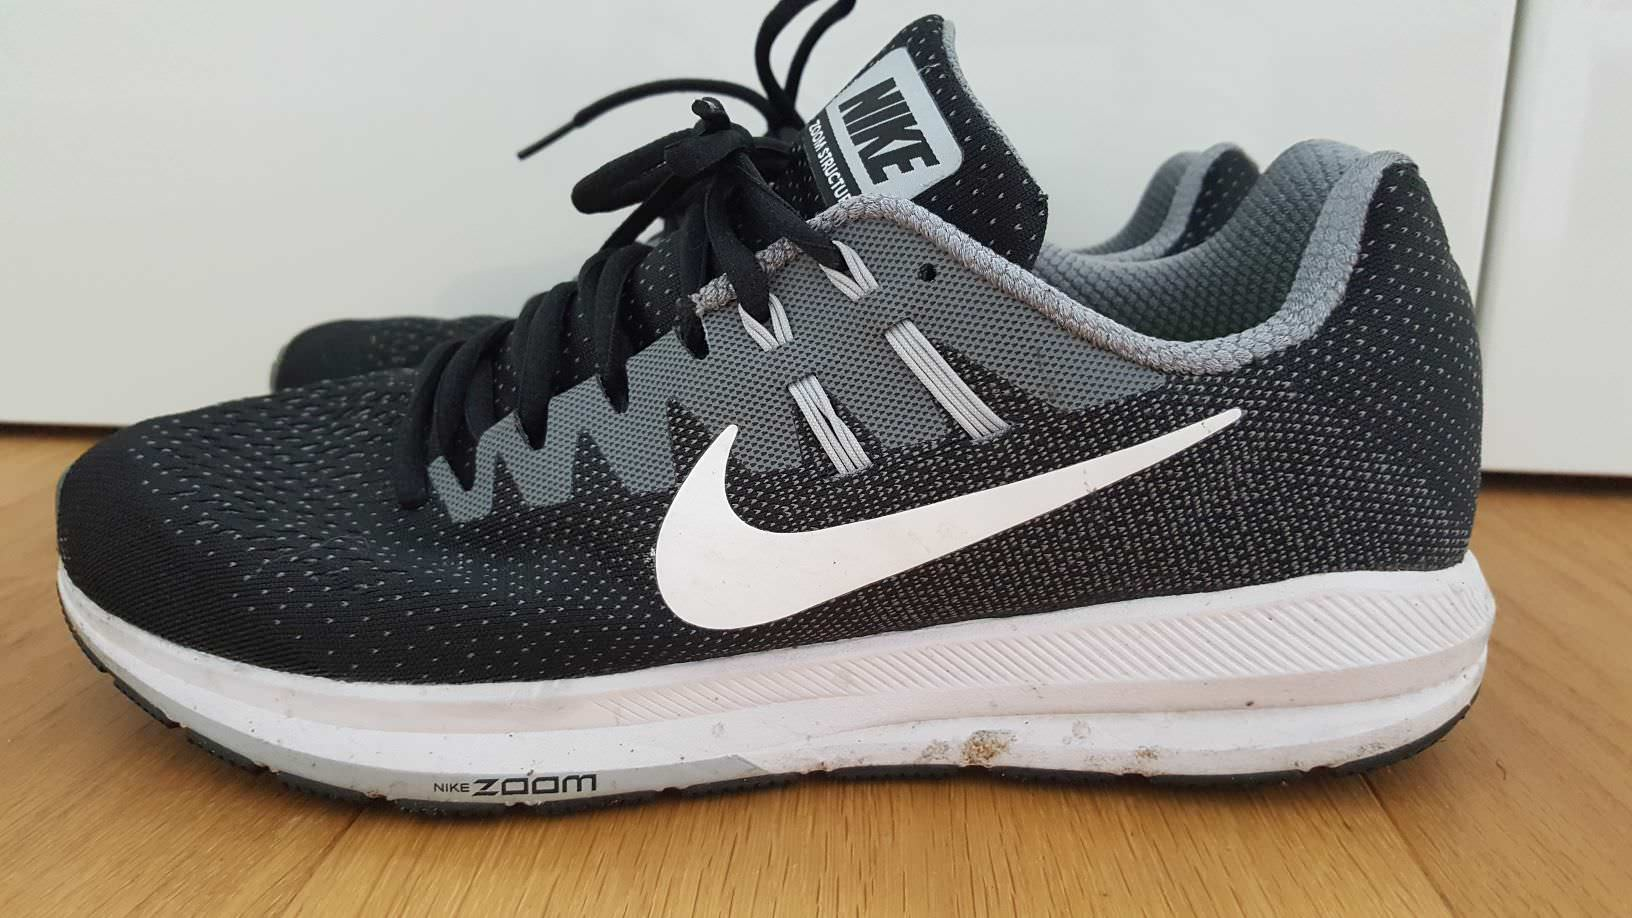 low priced 31cf6 ba447 Nike Zoom Structure 20 Review | Running Shoes Guru